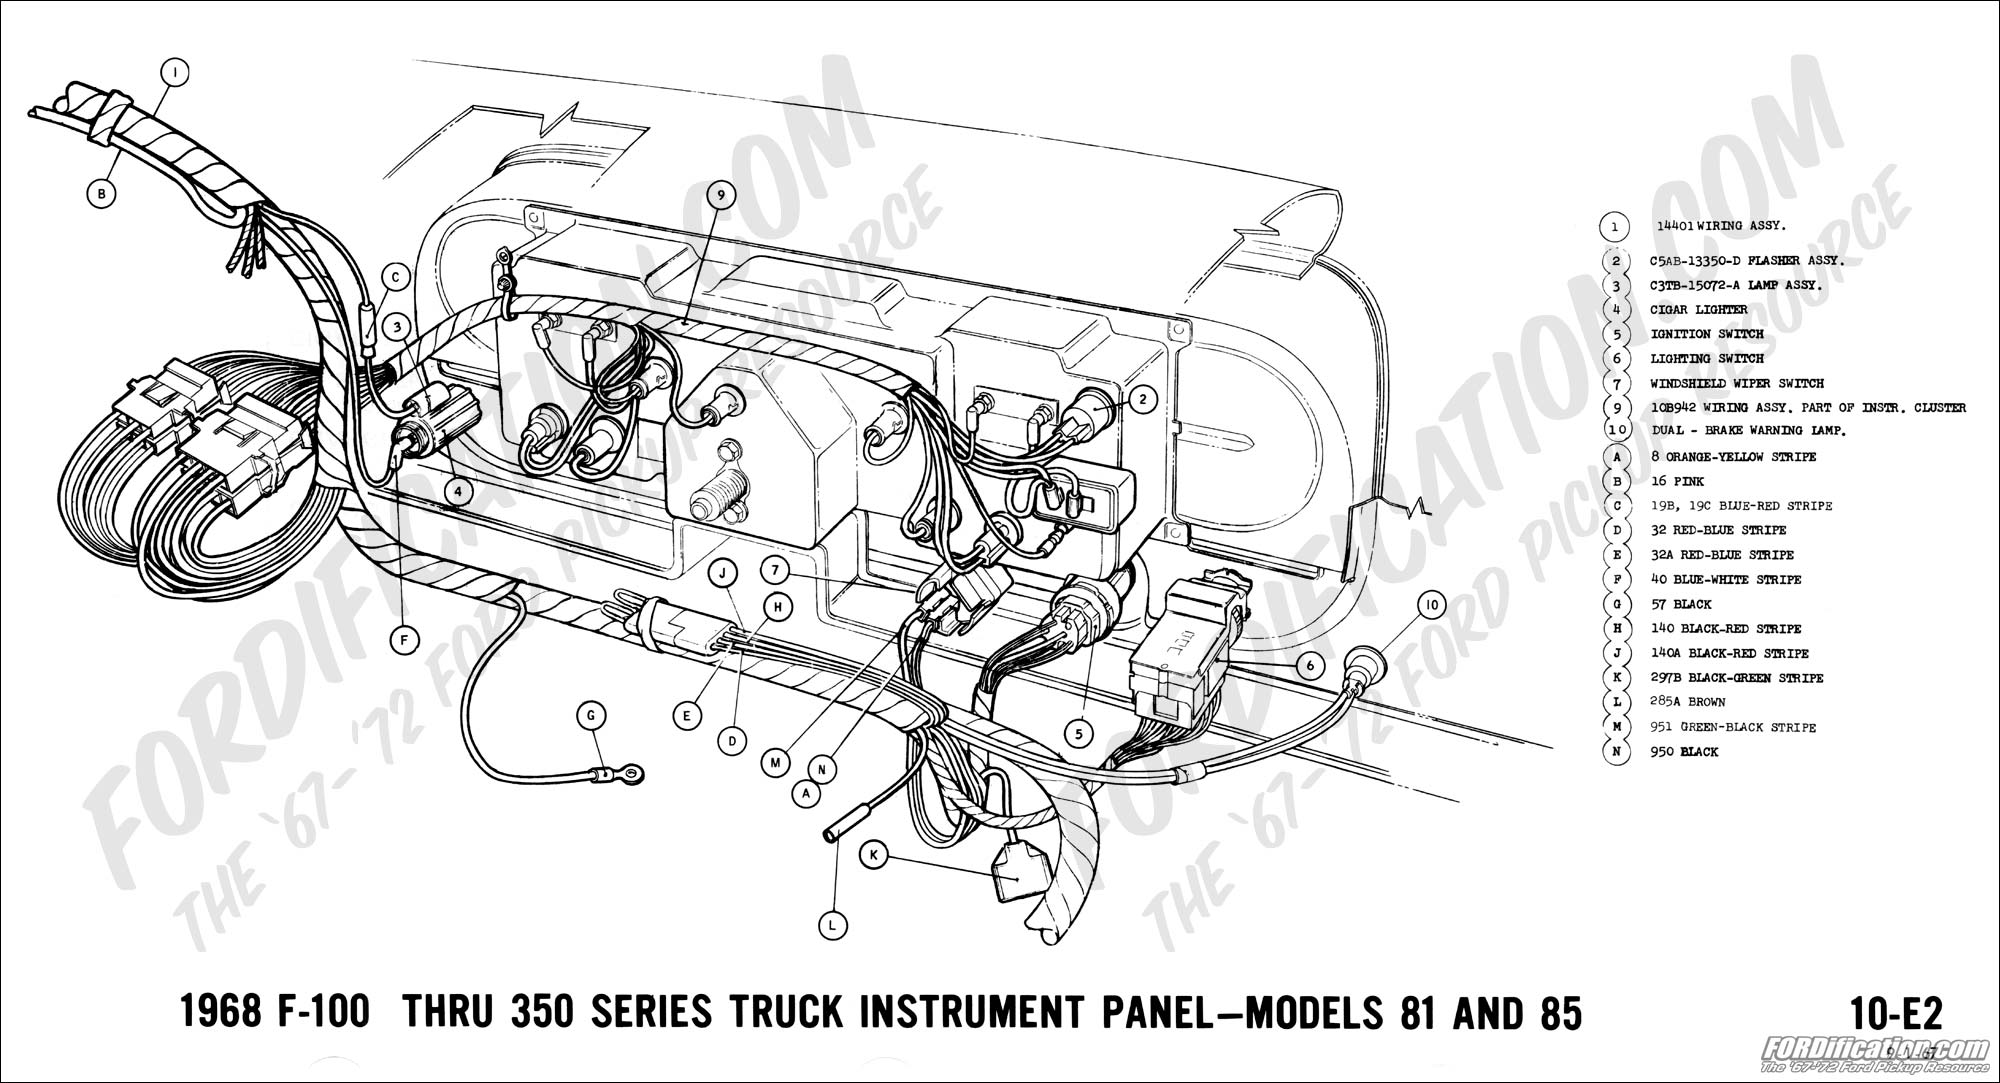 1970 Camaro Dash Wiring Diagram Ignition Library 1968 Chevrolet Turn Signal 68 Headlight Switch F 100 Thru 350 Instrument Panel